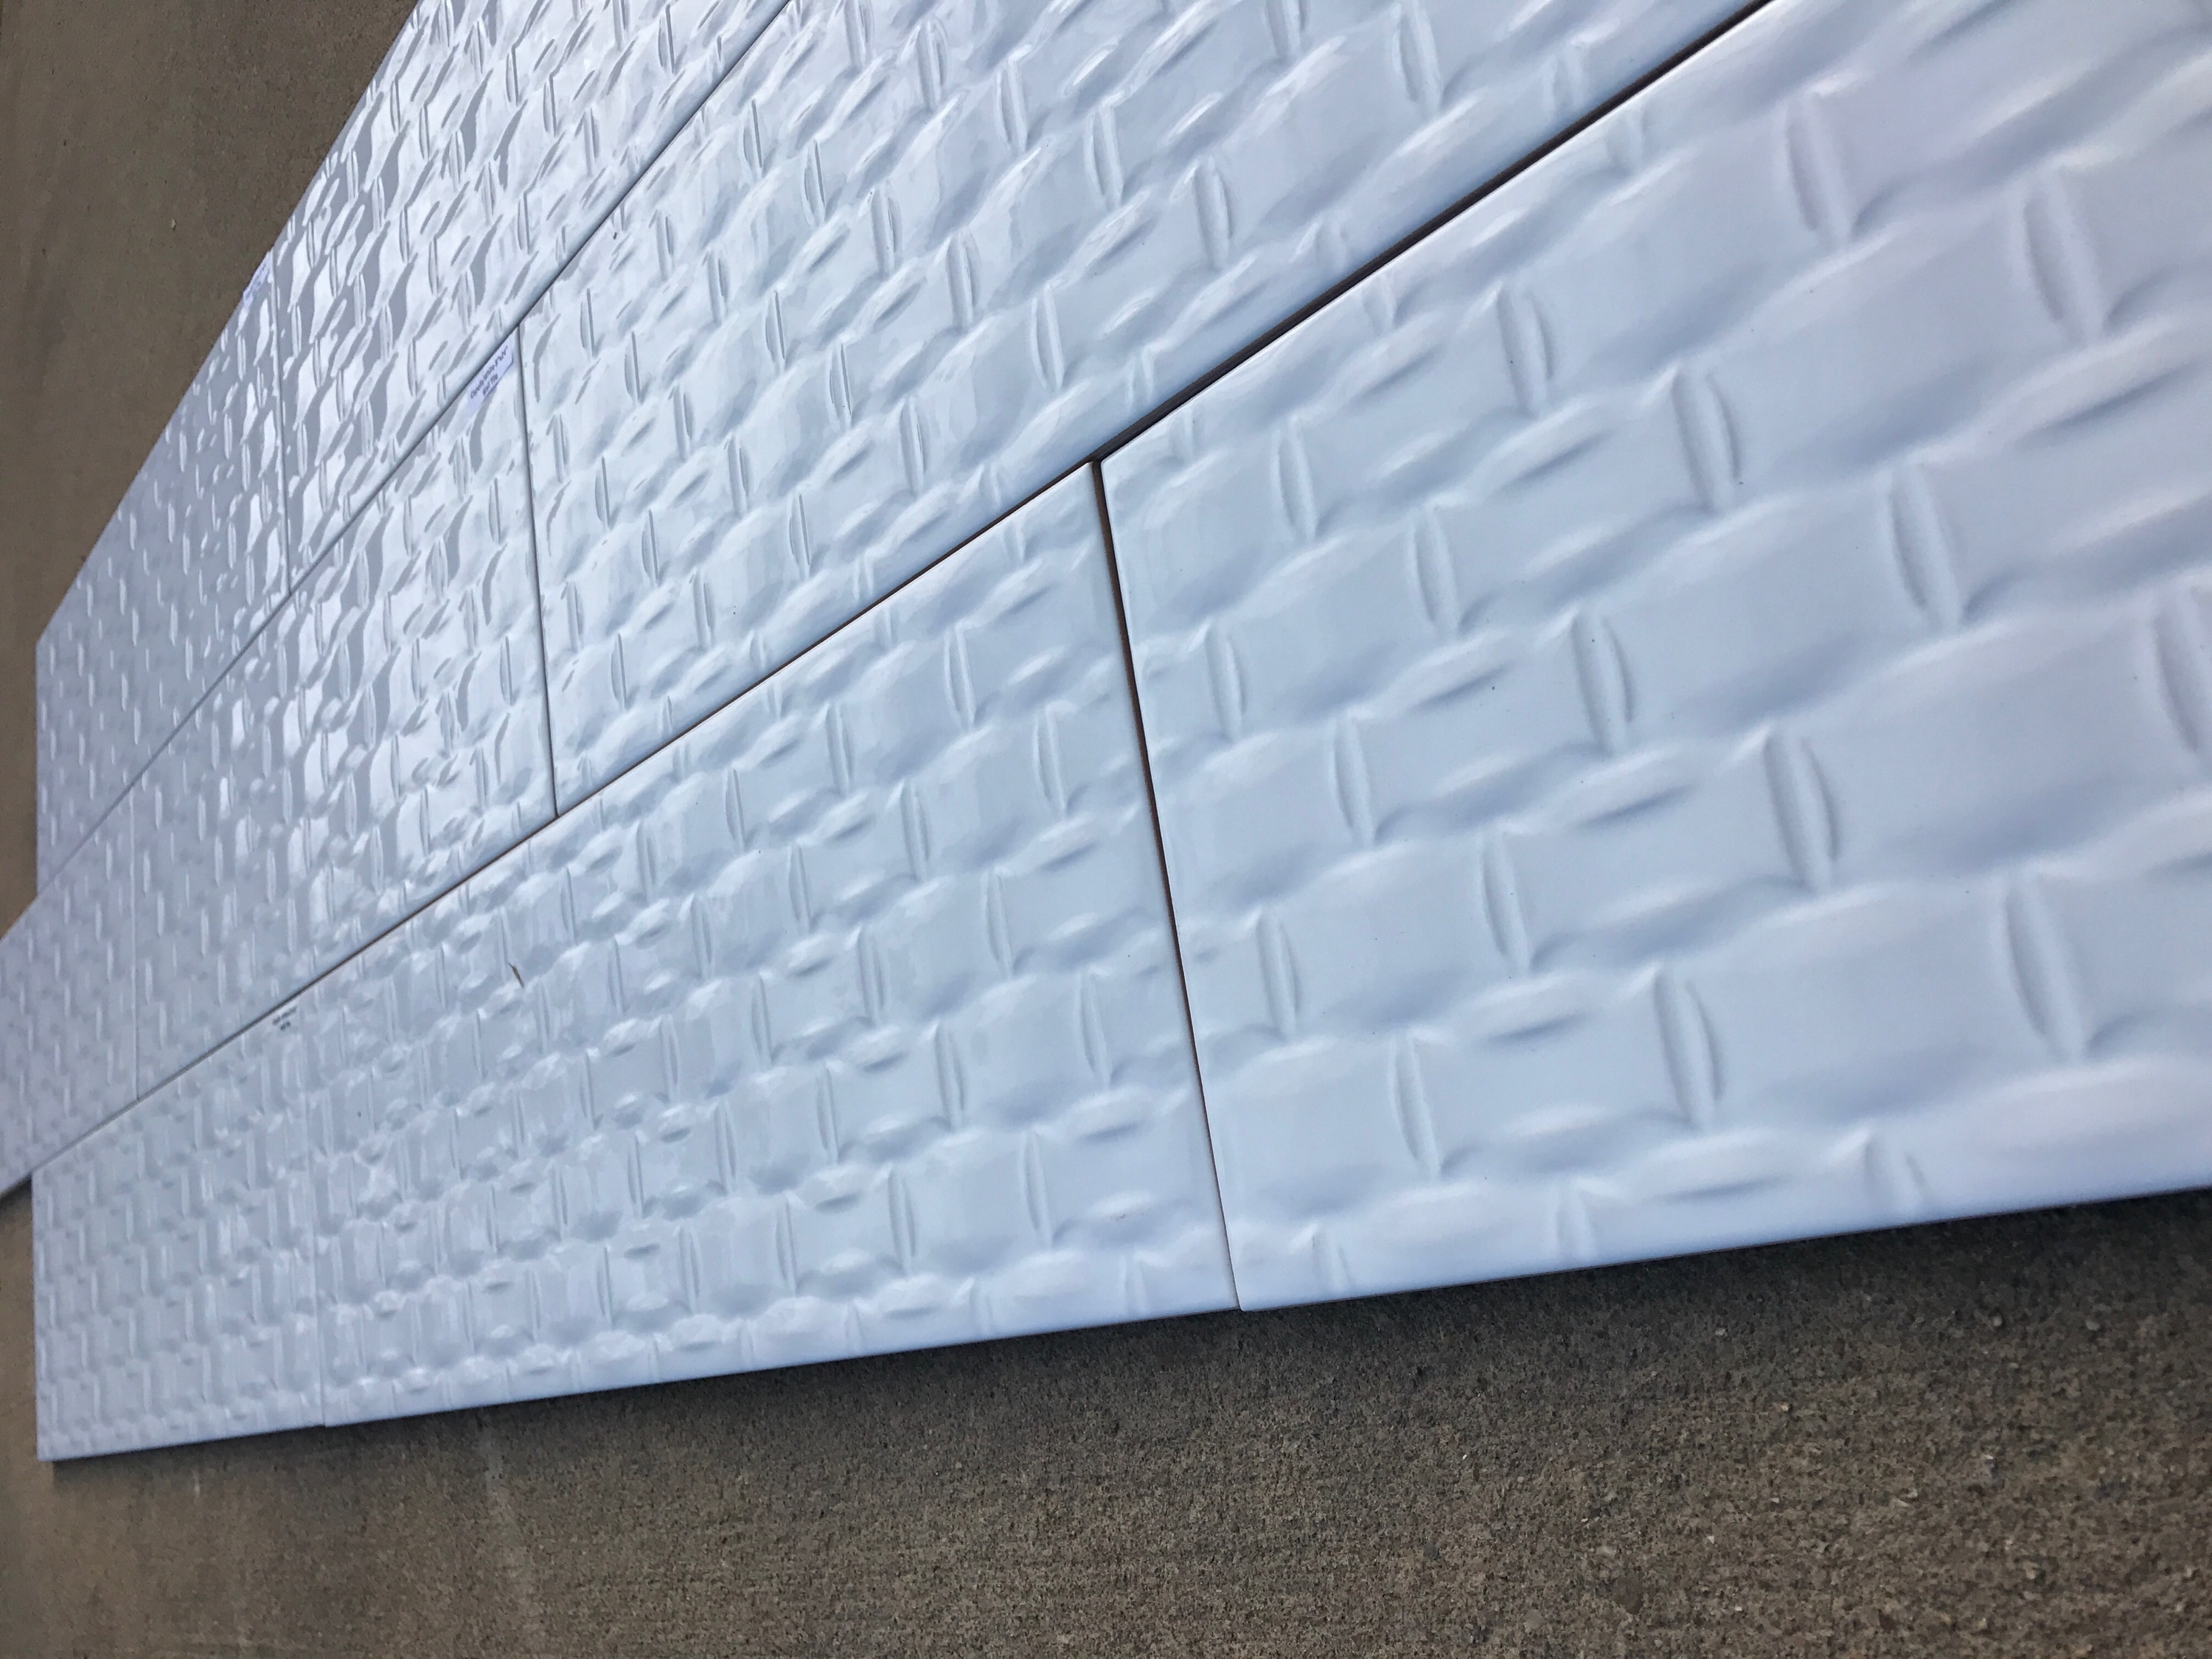 """Carpella White / 8""""x24"""" Size (3/8)"""" Height or Thinckness / 3D Embossed Polished 3D Embossed Tiles 0"""